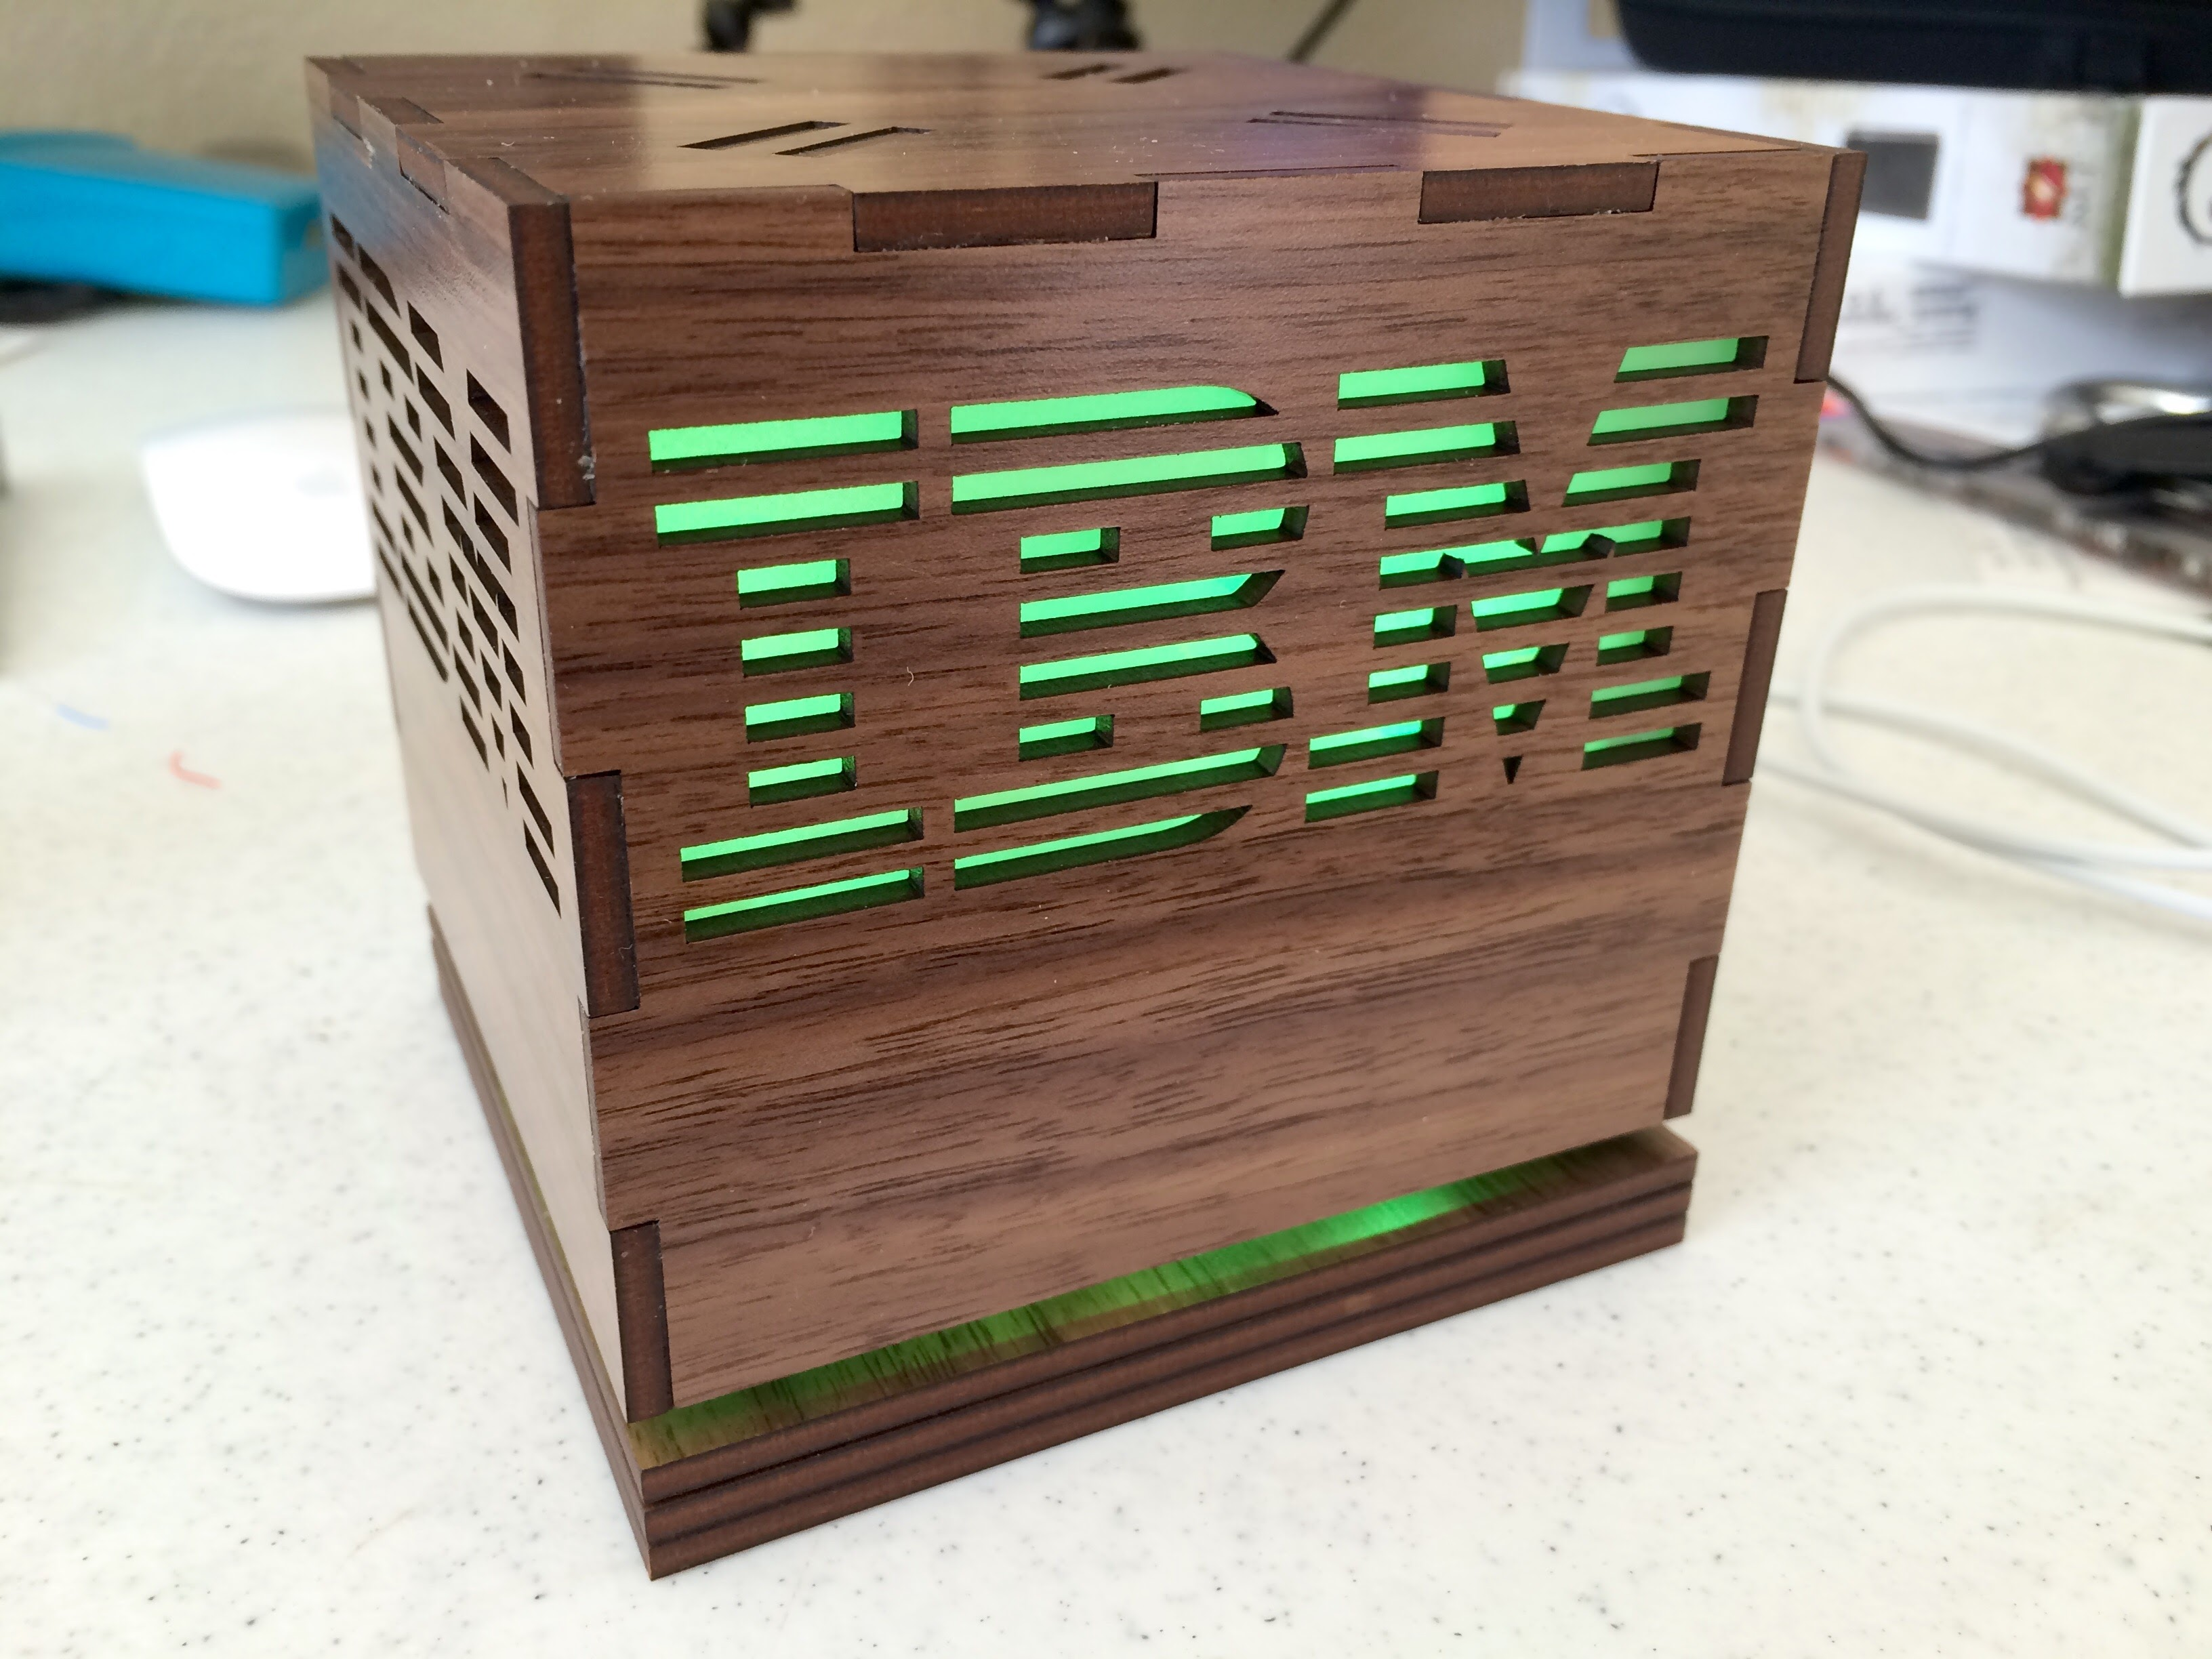 IBM Cube: Software